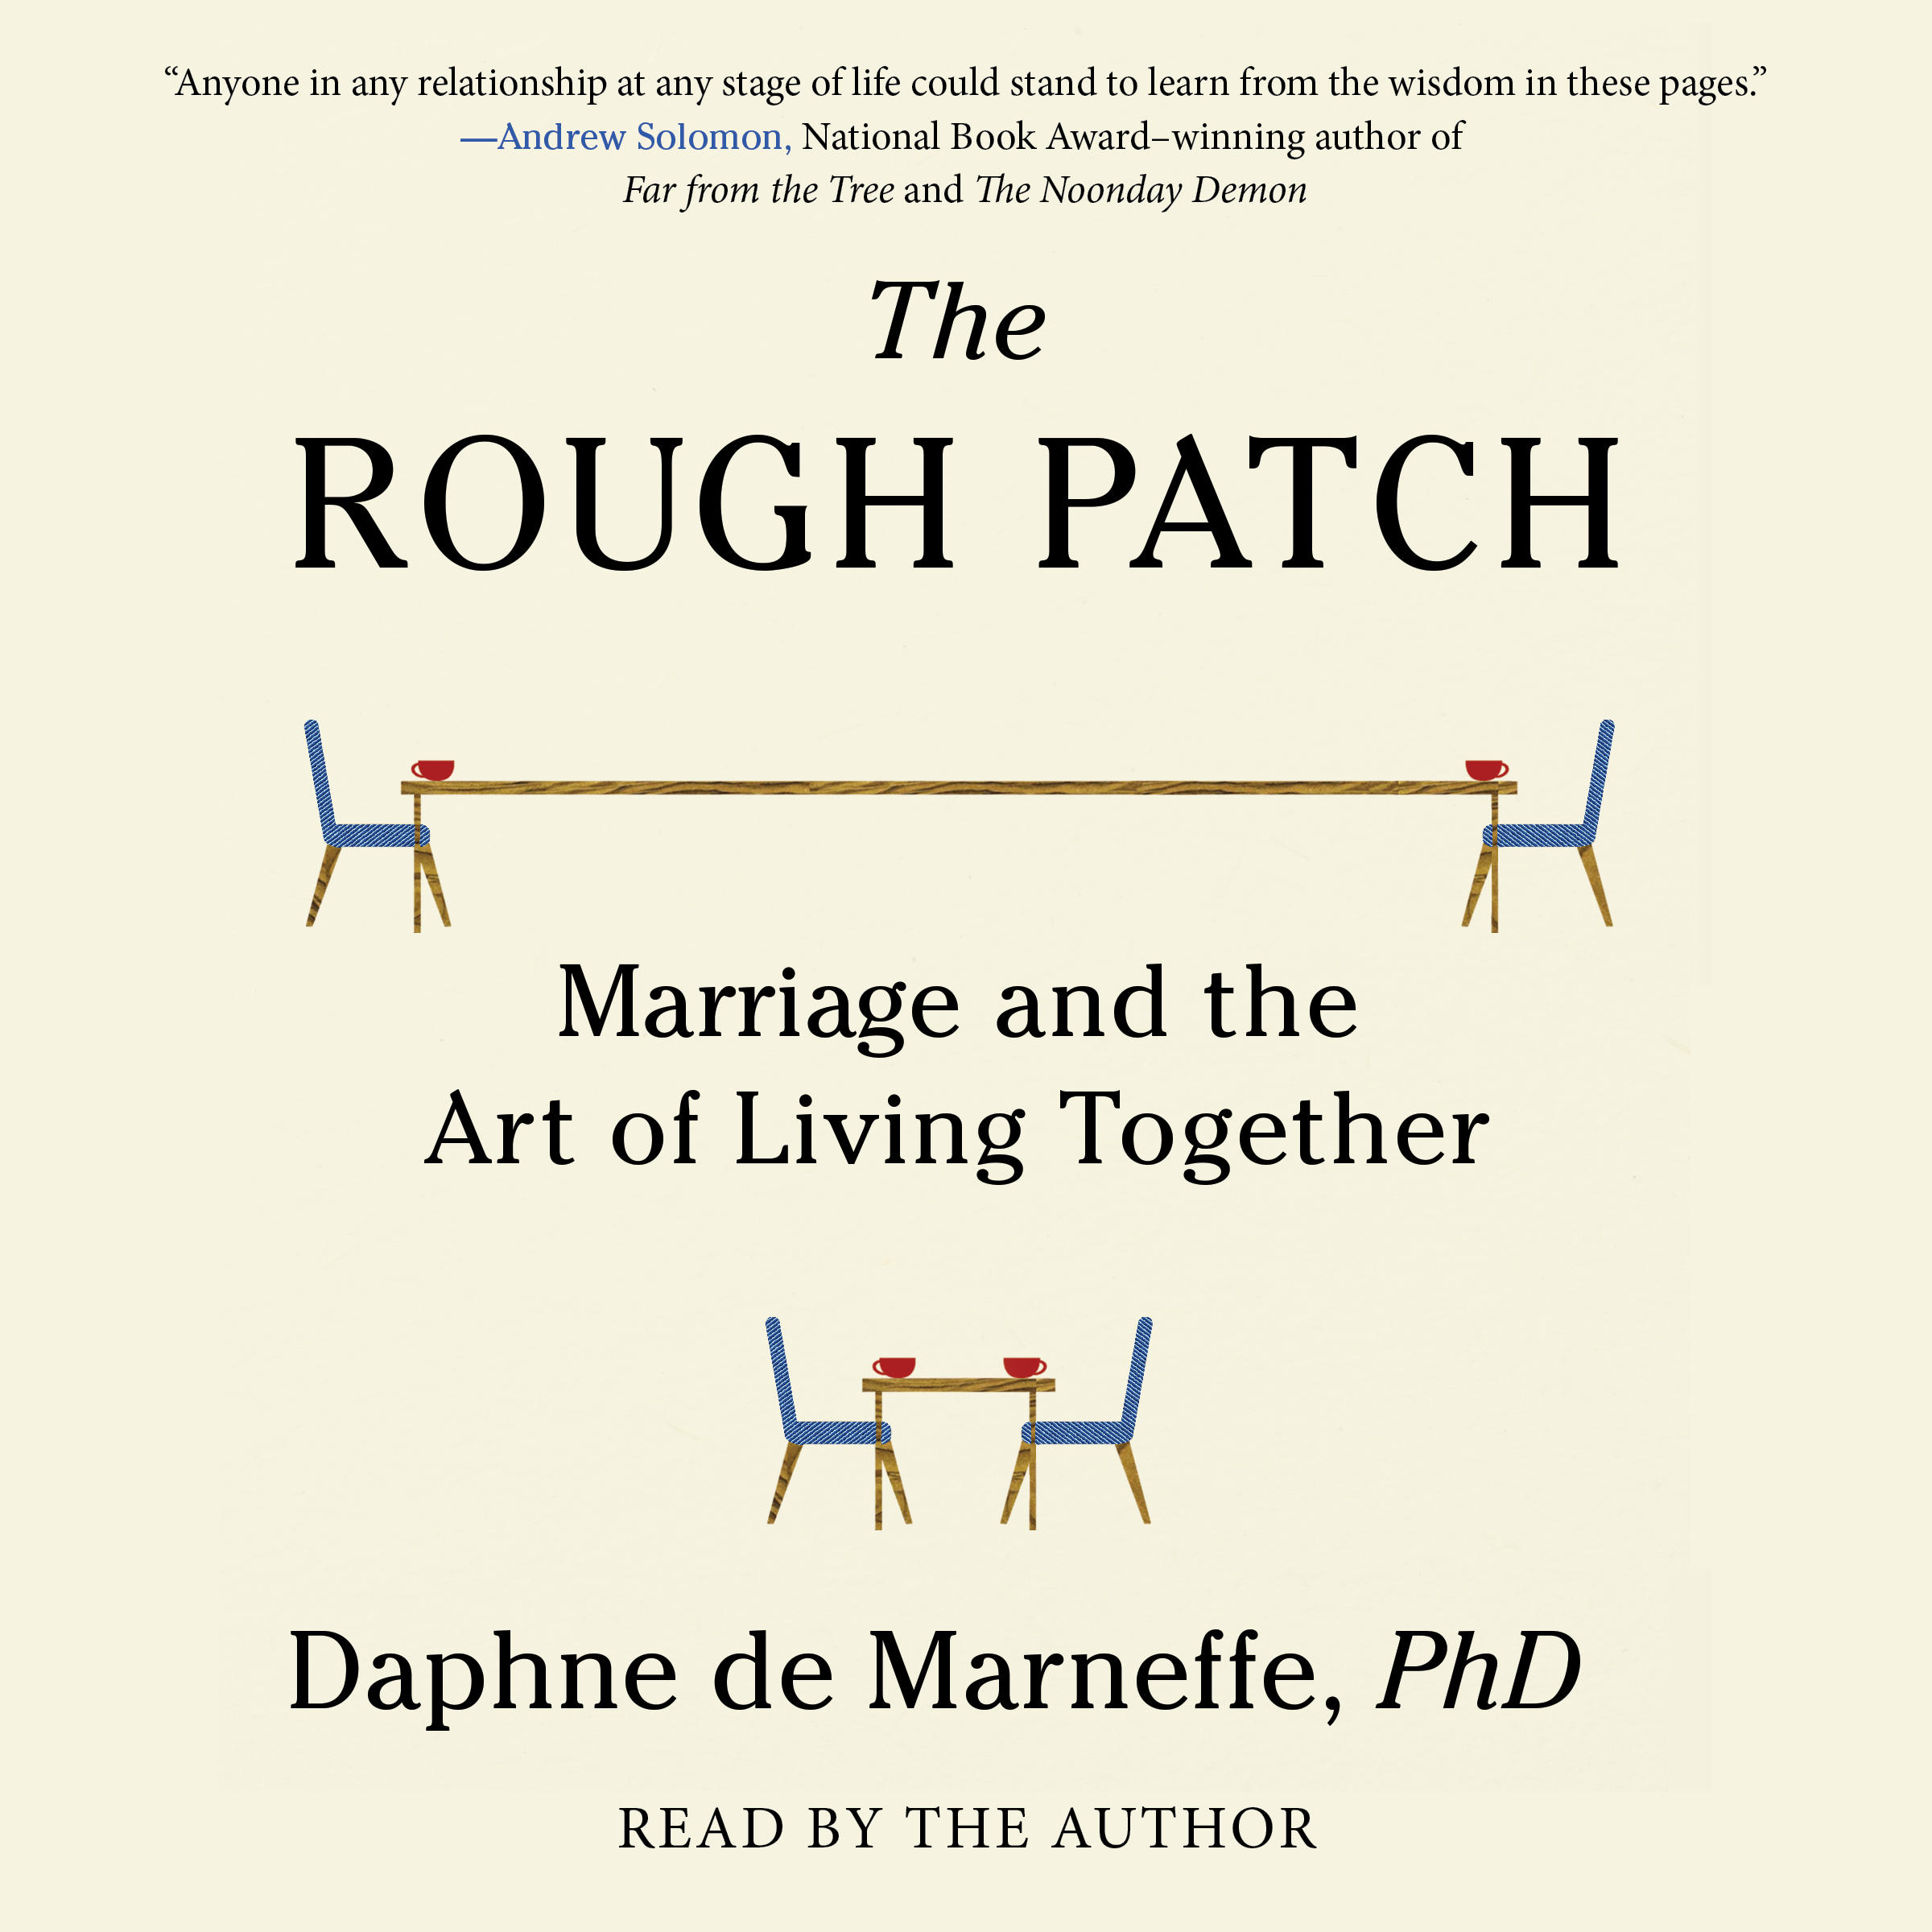 The rough patch 9781508250531 hr